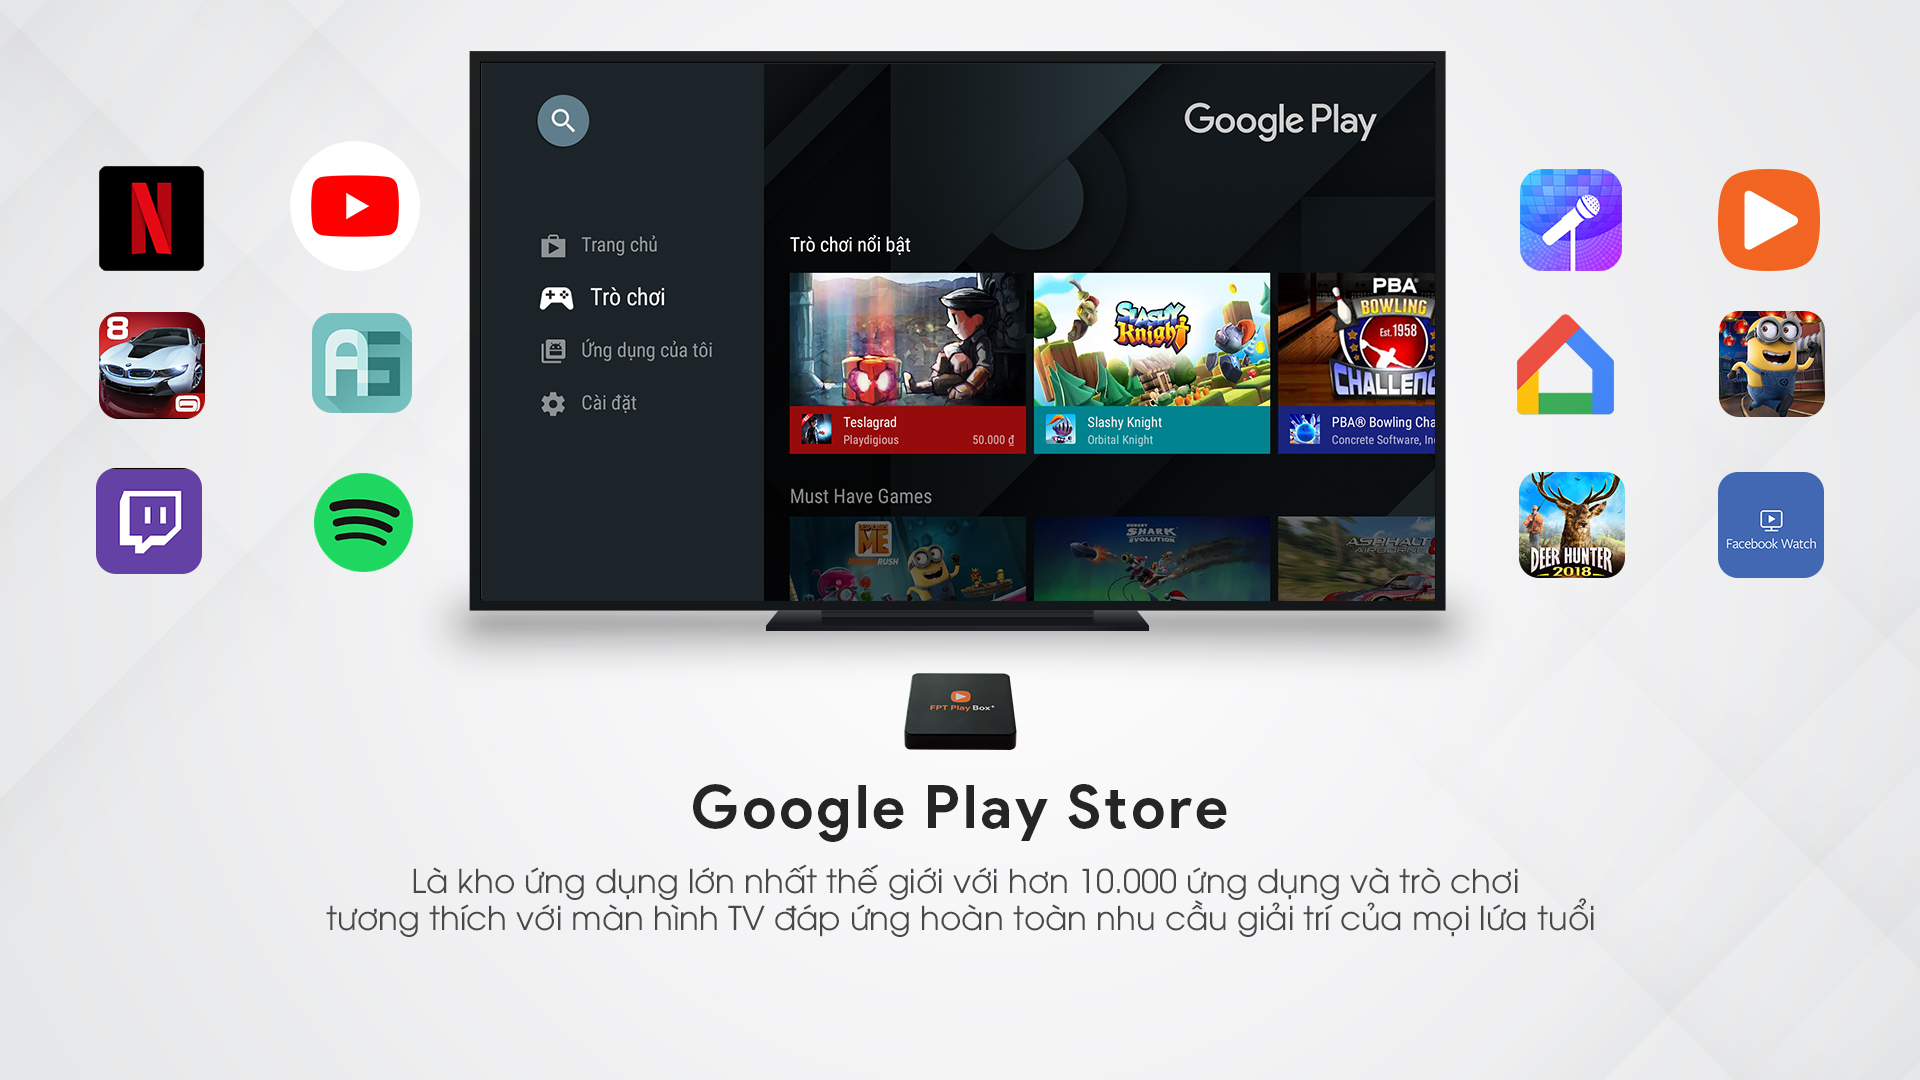 GOOGLE PLAY TRÊN FPT PLAY BOX